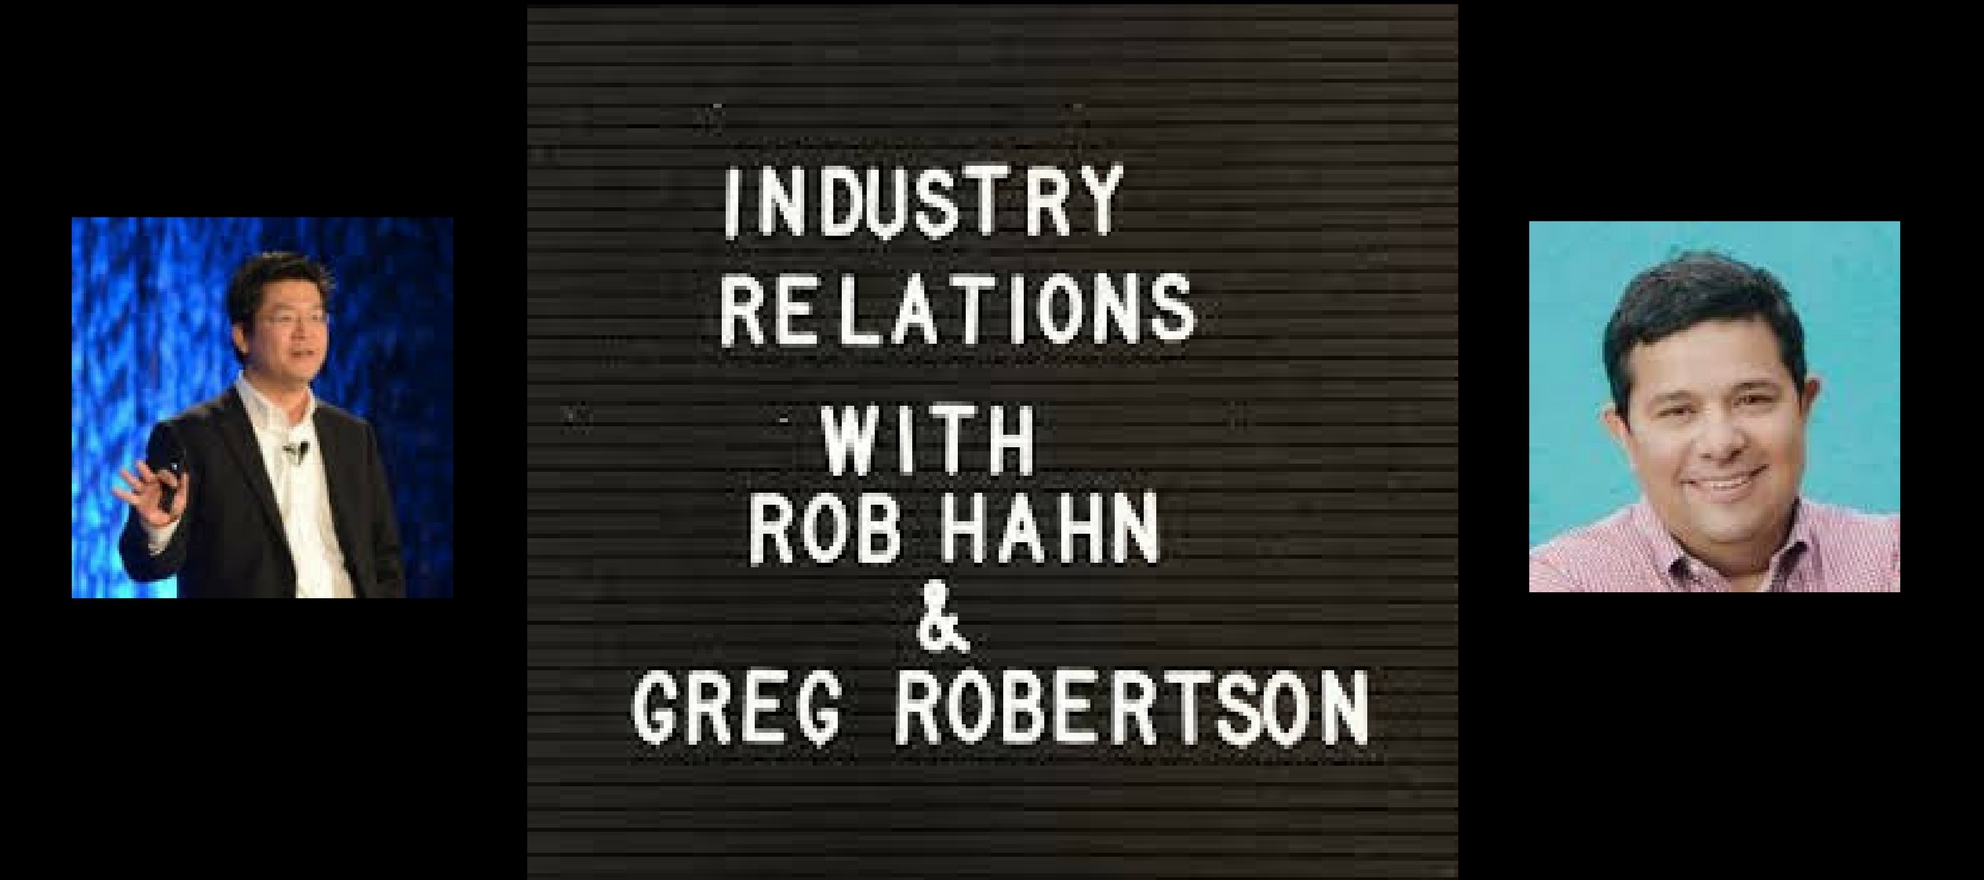 rob hahn greg robertson industry relations podcast zillow upstream